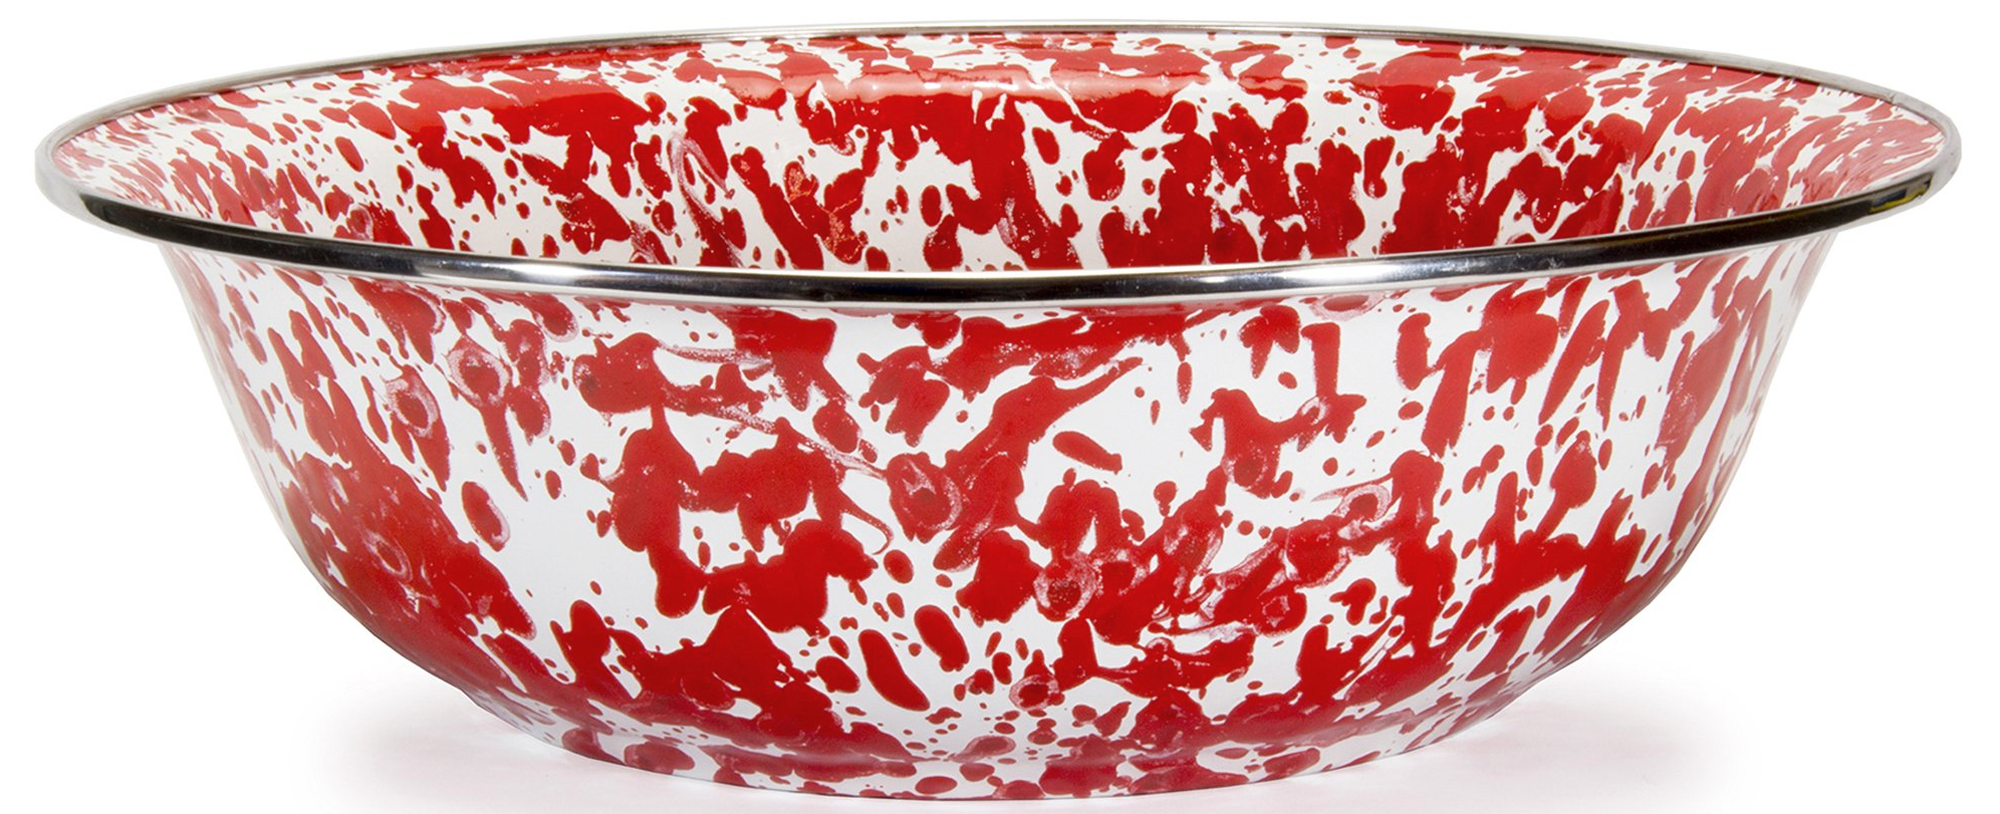 RD03 Red Swirl Serving Basin